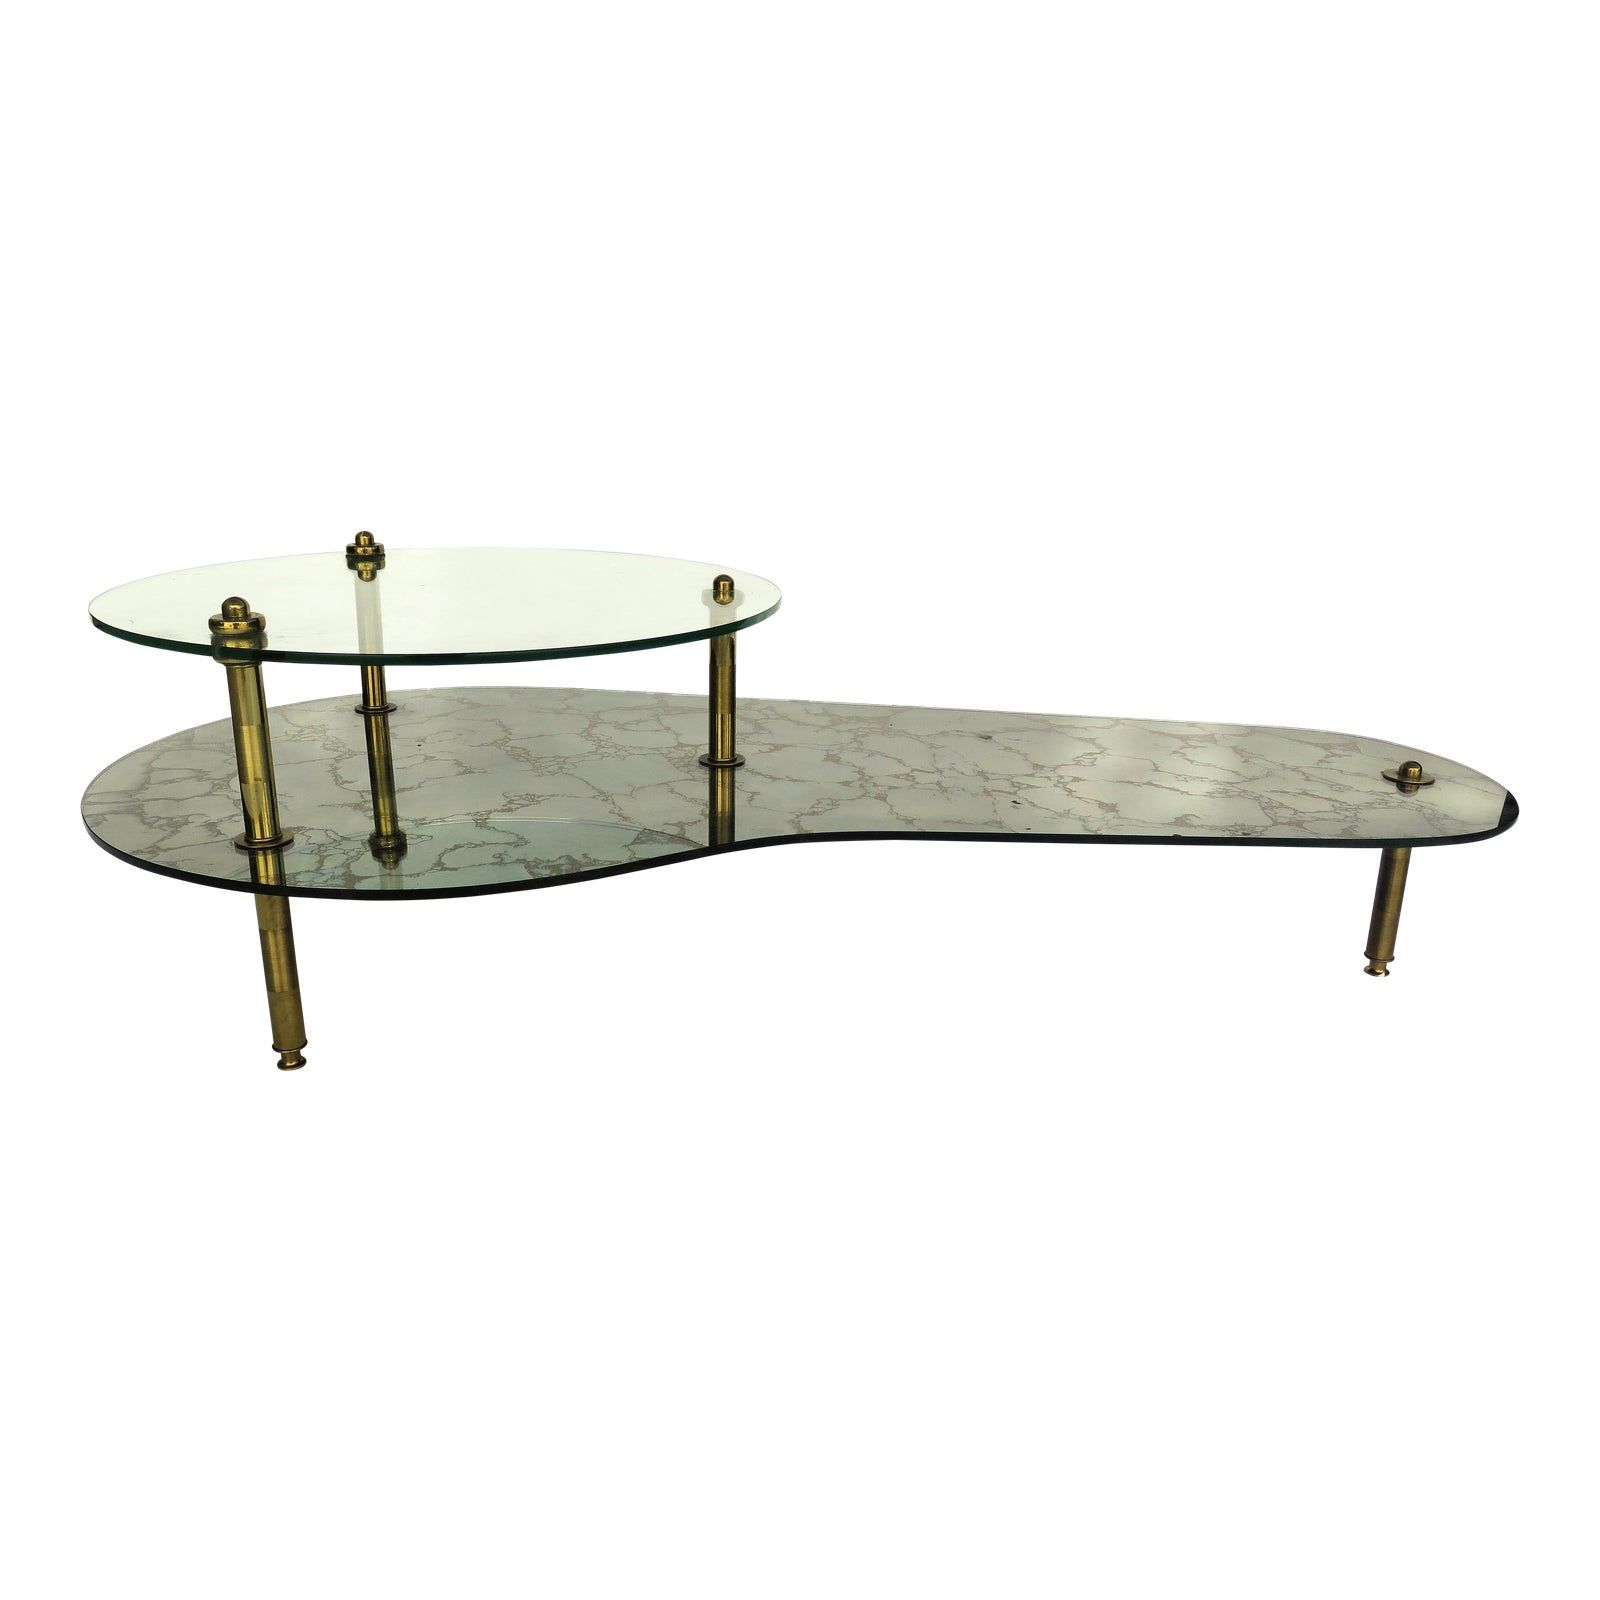 1970s Italian Mirrored Coffee Table Antique Coffee Tables Table Coffee